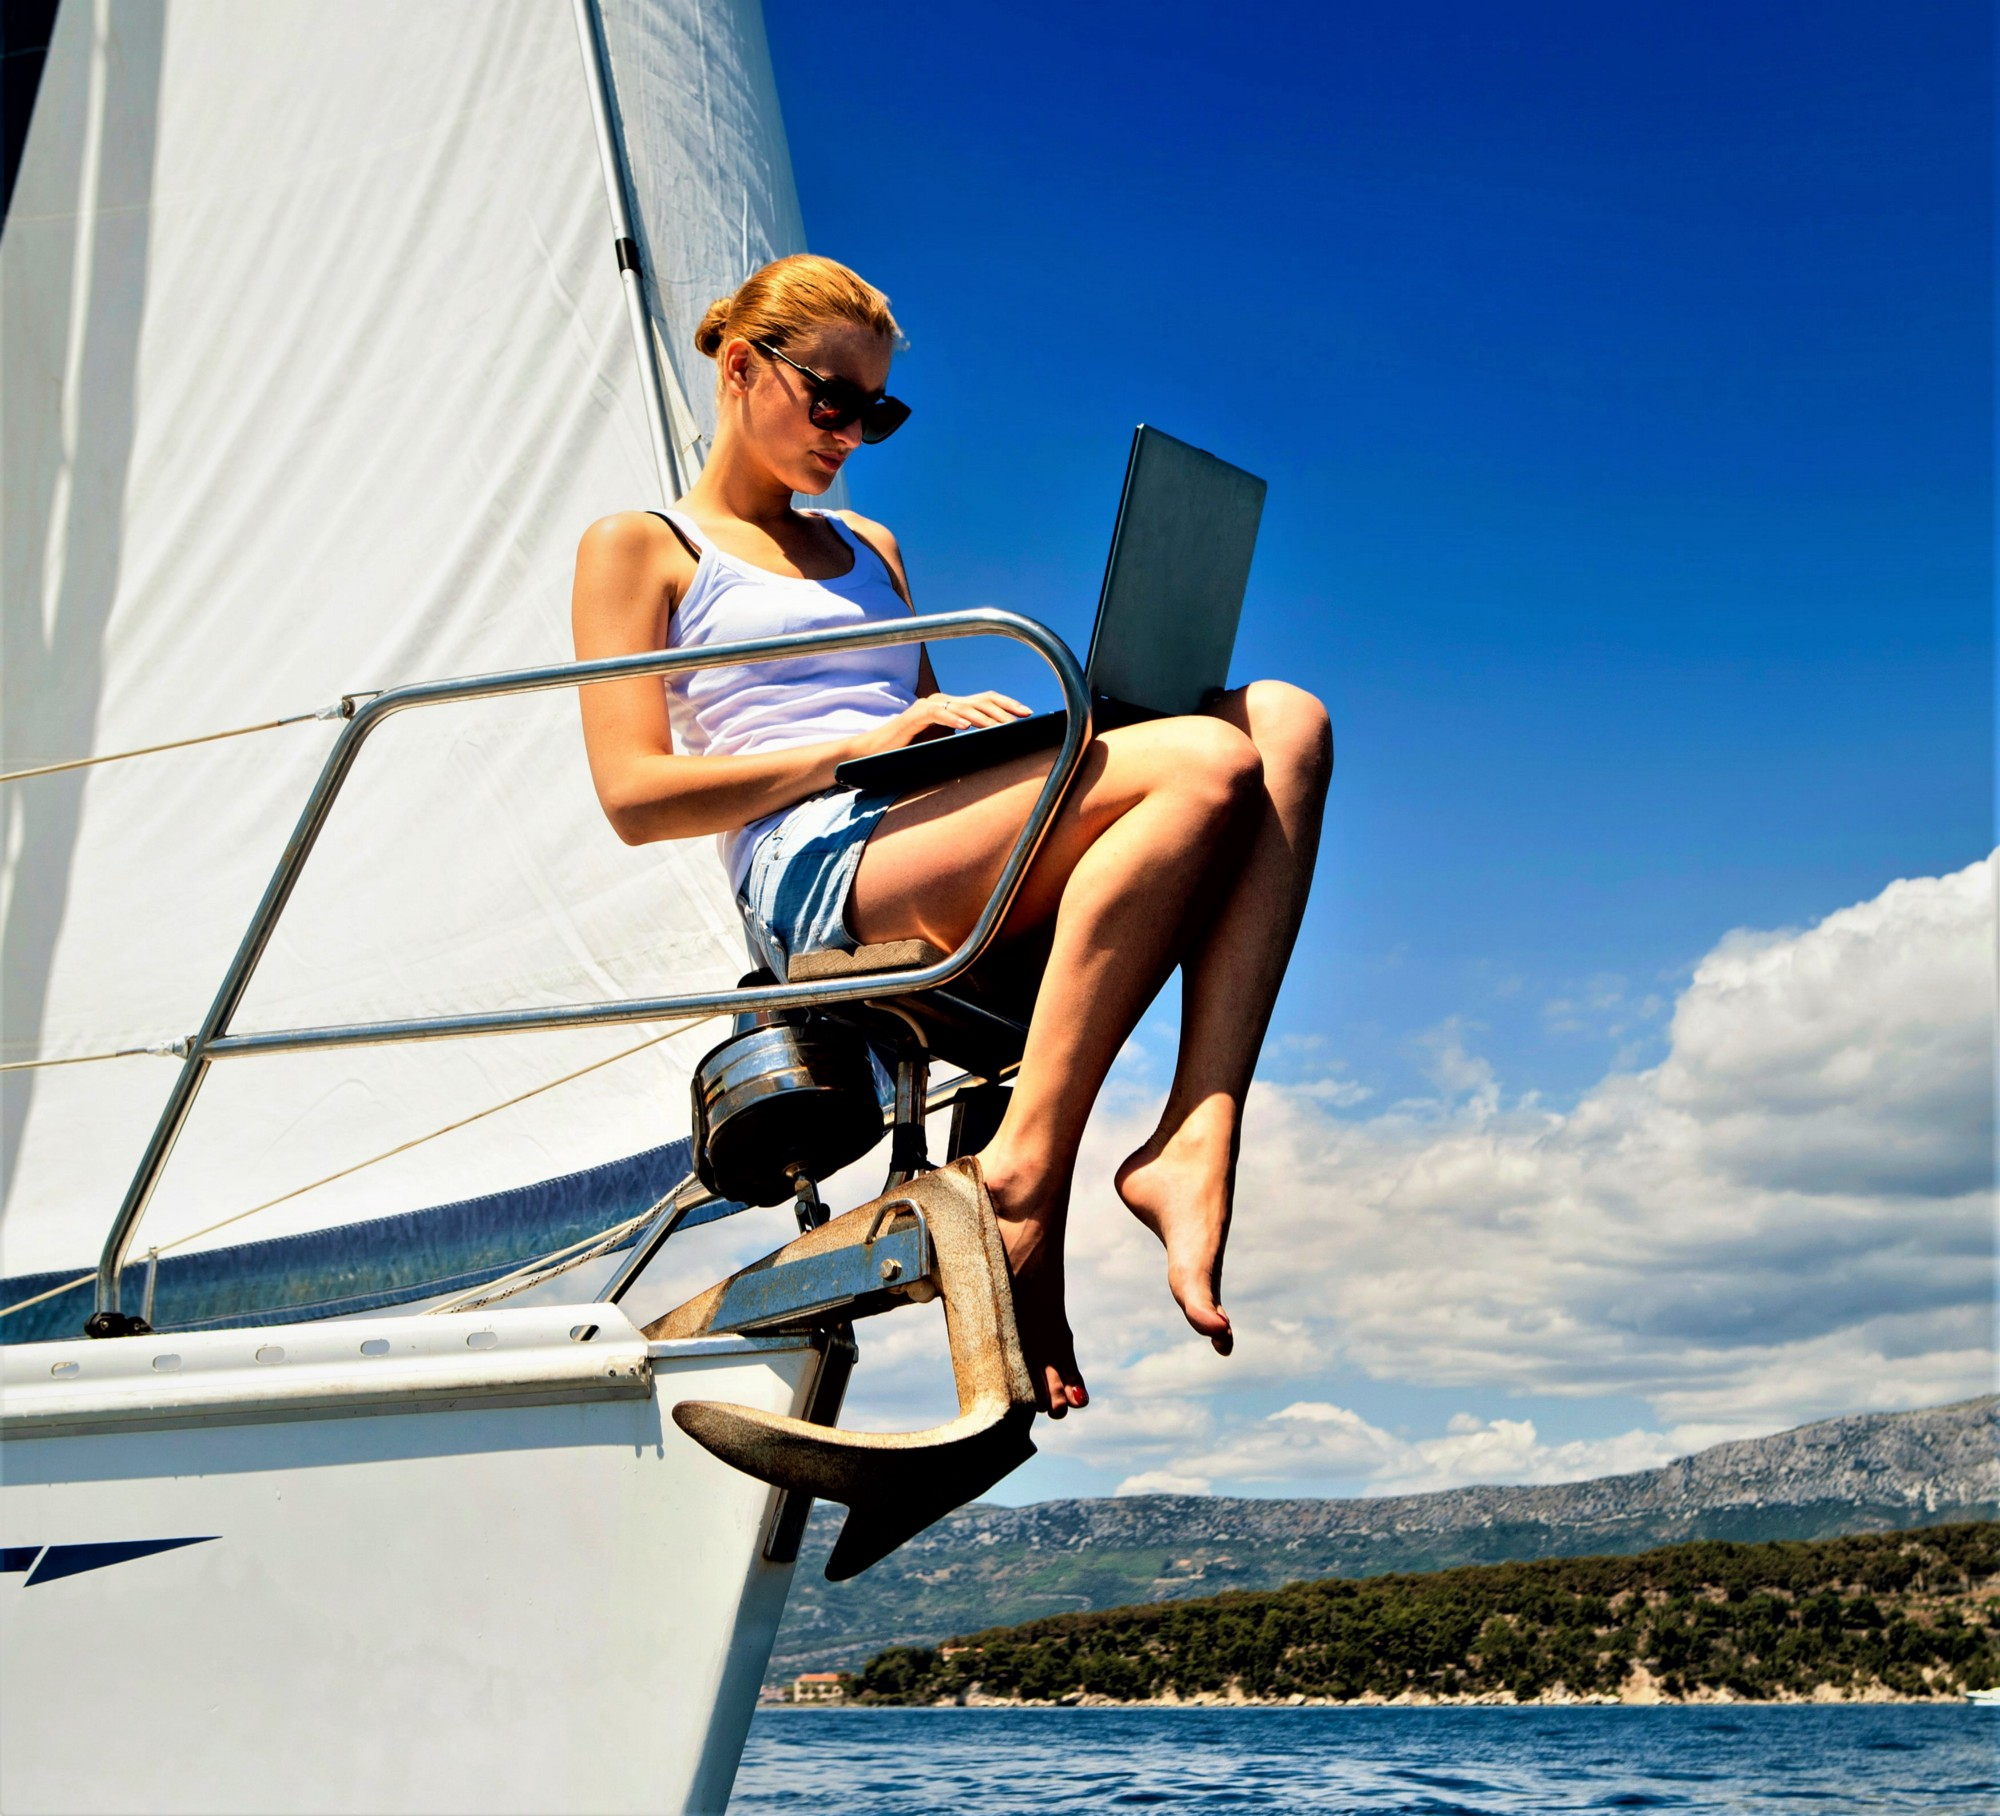 girl with blonde hair wearing white t-shirt and blue shorts sitting on front end of sailboat with computer in her lap